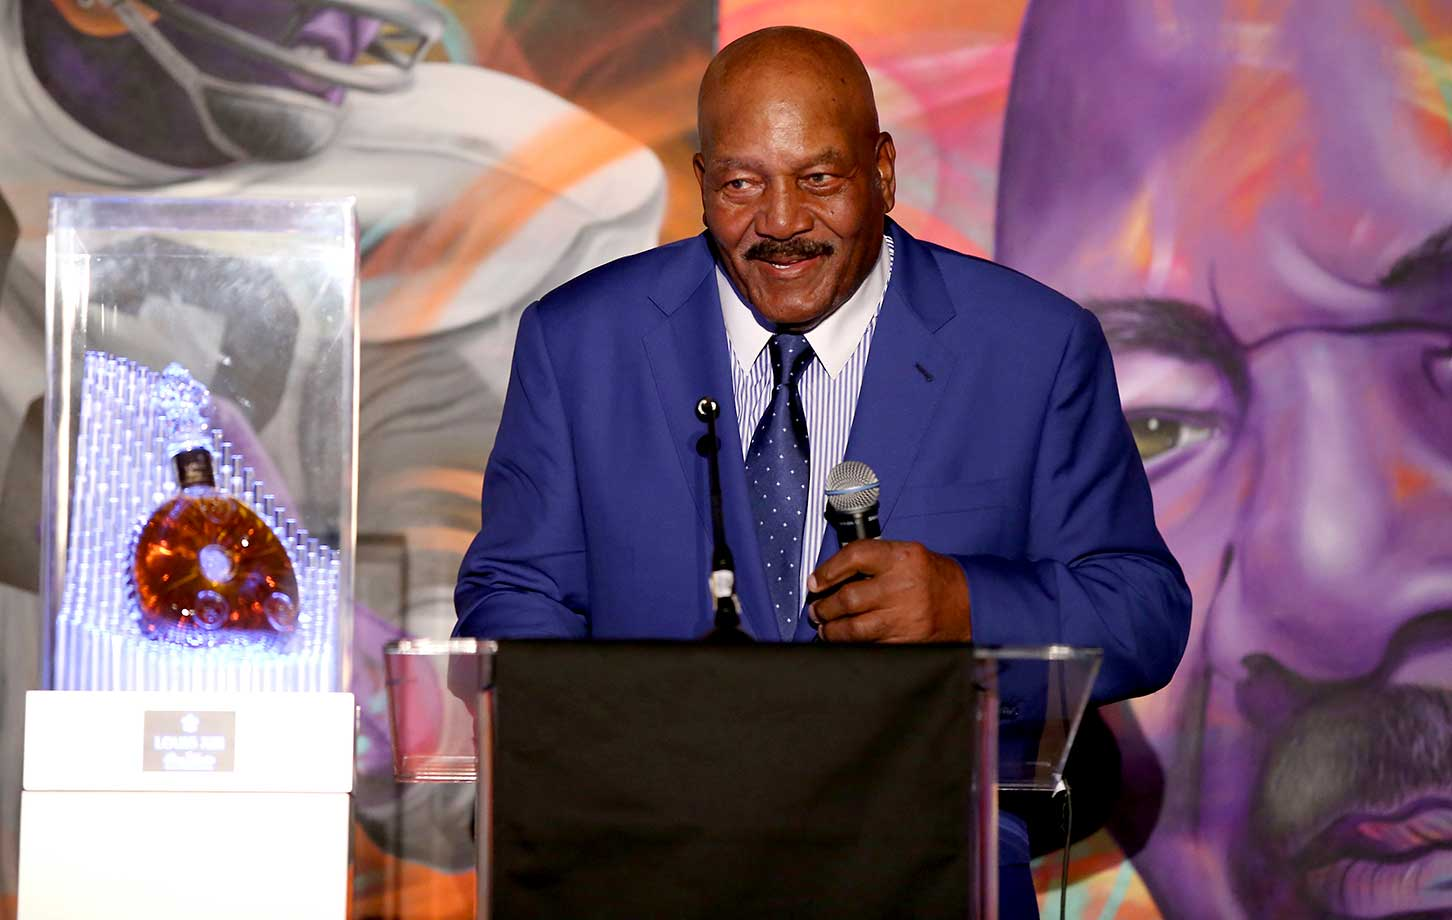 Former Cleveland Browns running back and NFL Hall of Famer Jim Brown, who turns 80 on Feb. 17, was honored in San Francisco Thursday by Haute Living and Louis XIII.